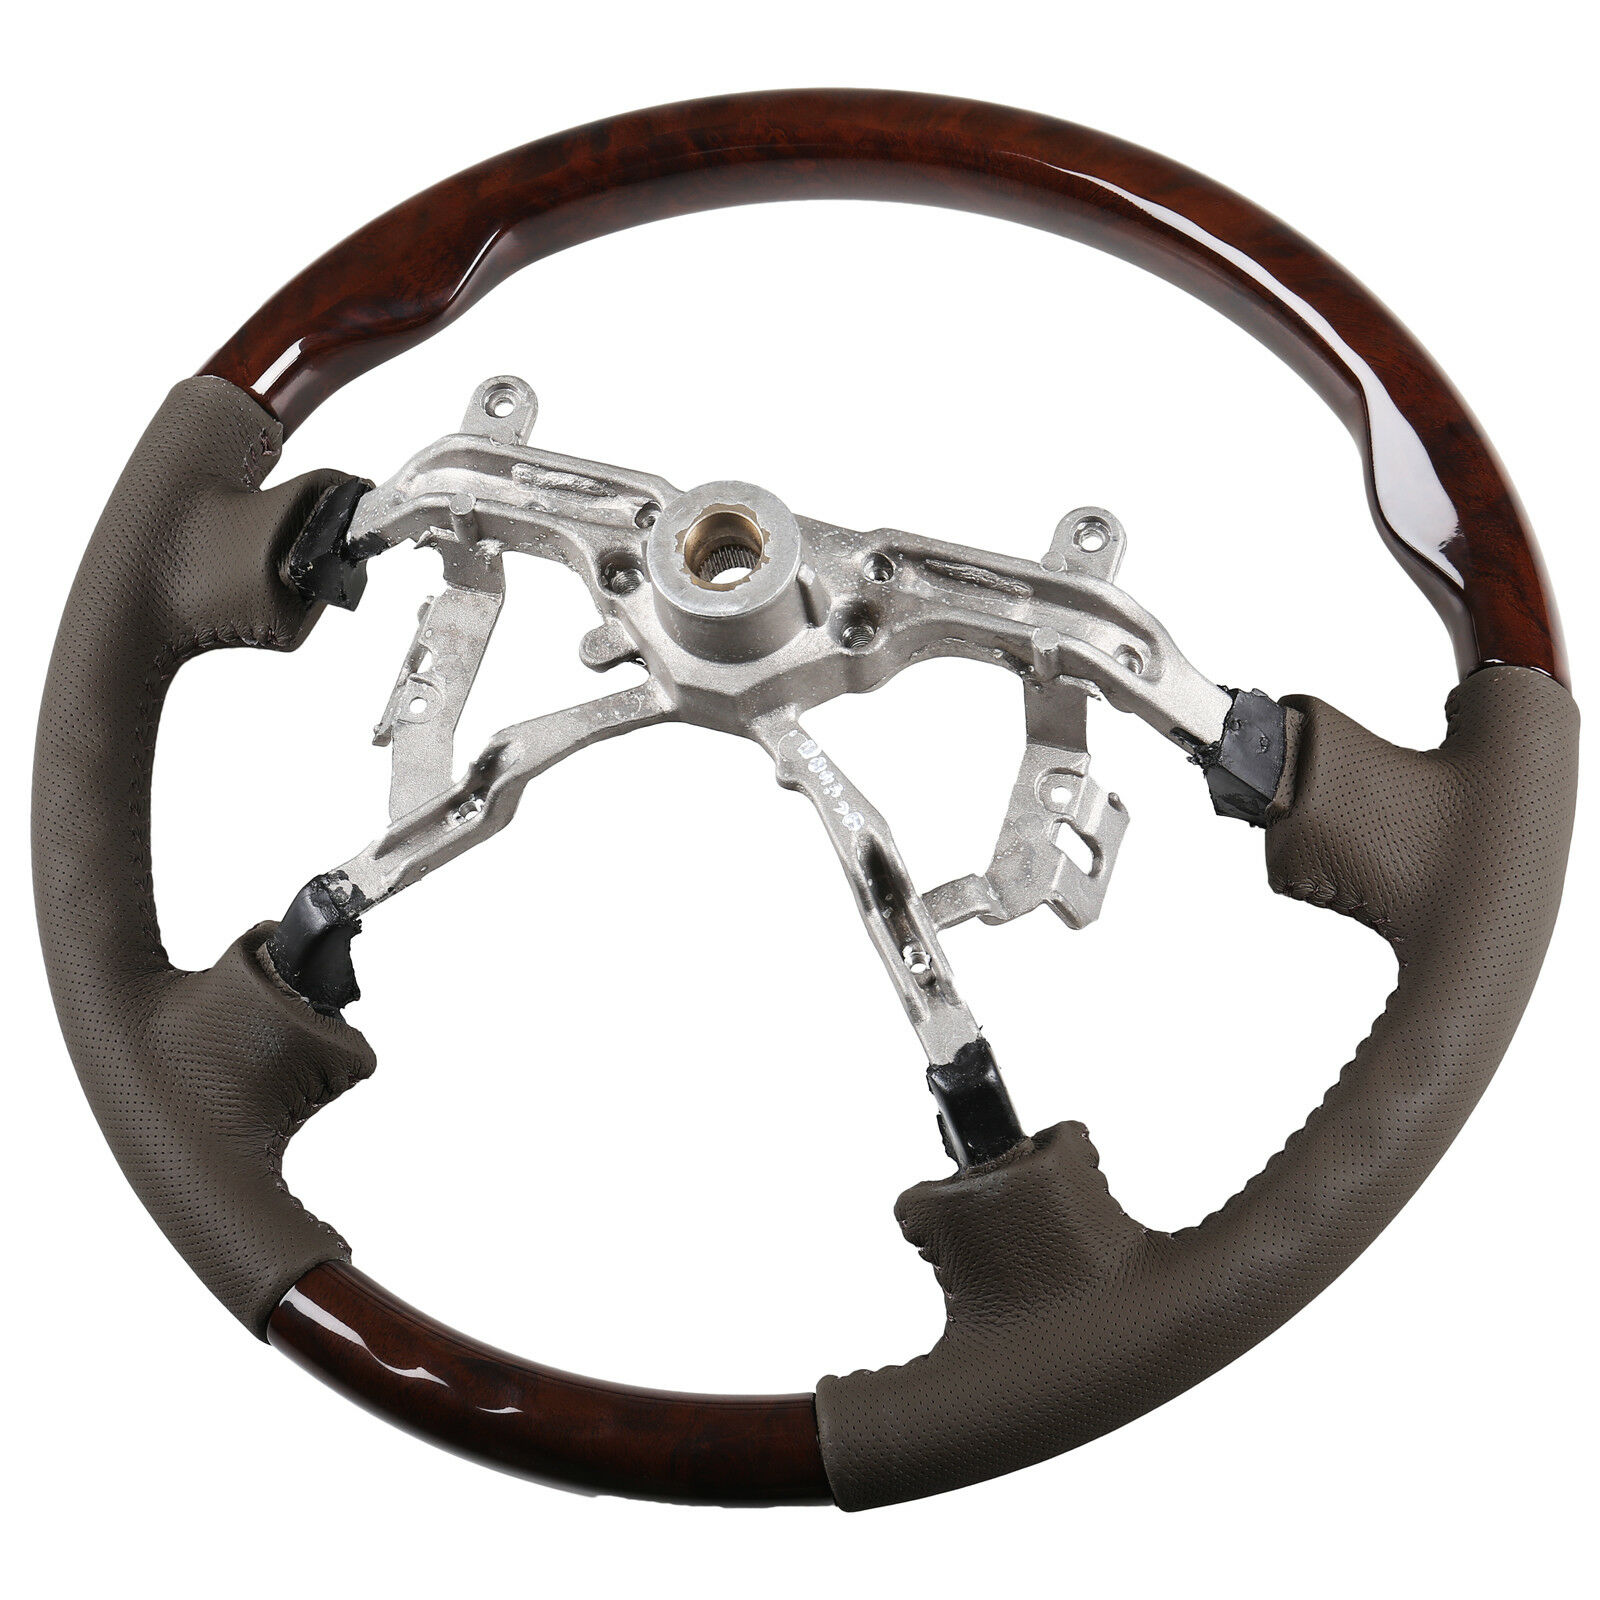 Replacement Steering Wheel Dark Wood Grain Leather Grip For Toyota Land Cruiser Lexus LX470